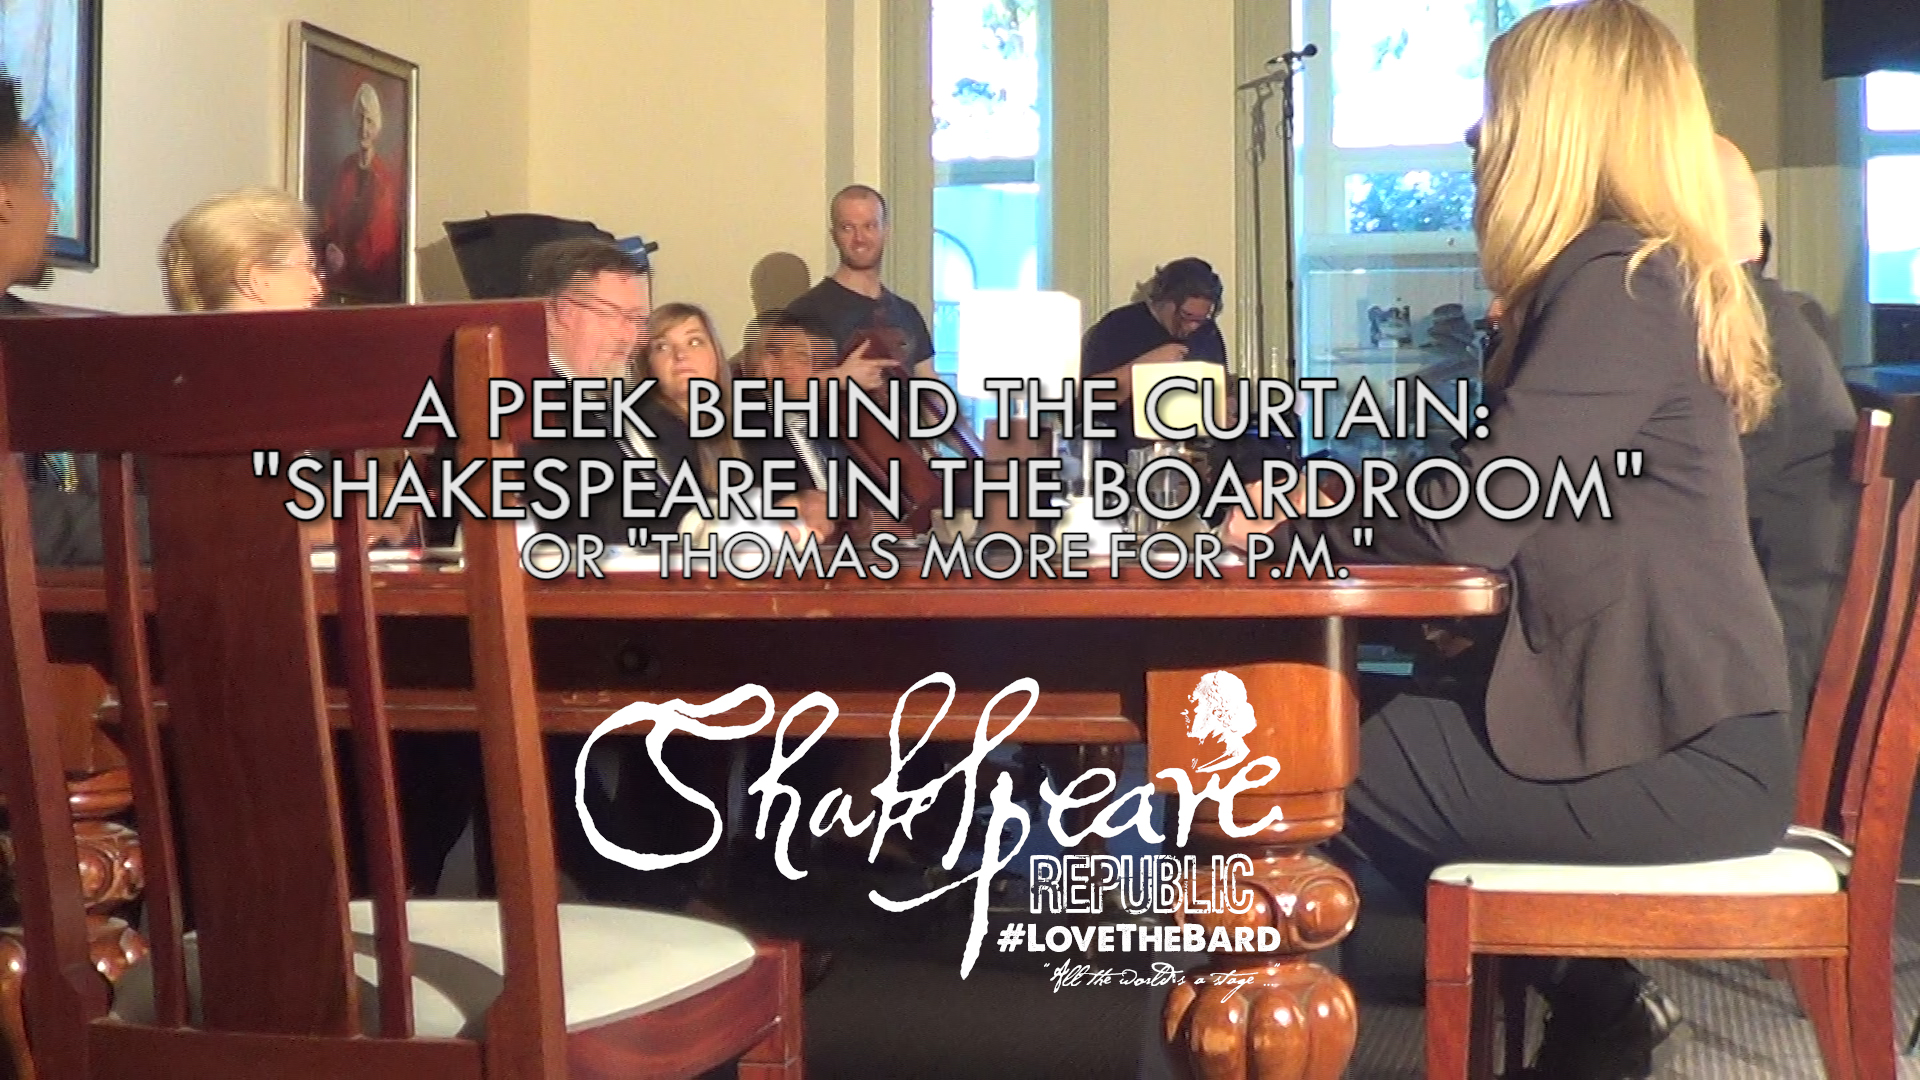 Shakespeare Republic: #LoveTheBard – S2E3 Behind-The-Scenes featuring Christopher Kirby #Shakespeare #WebSeries